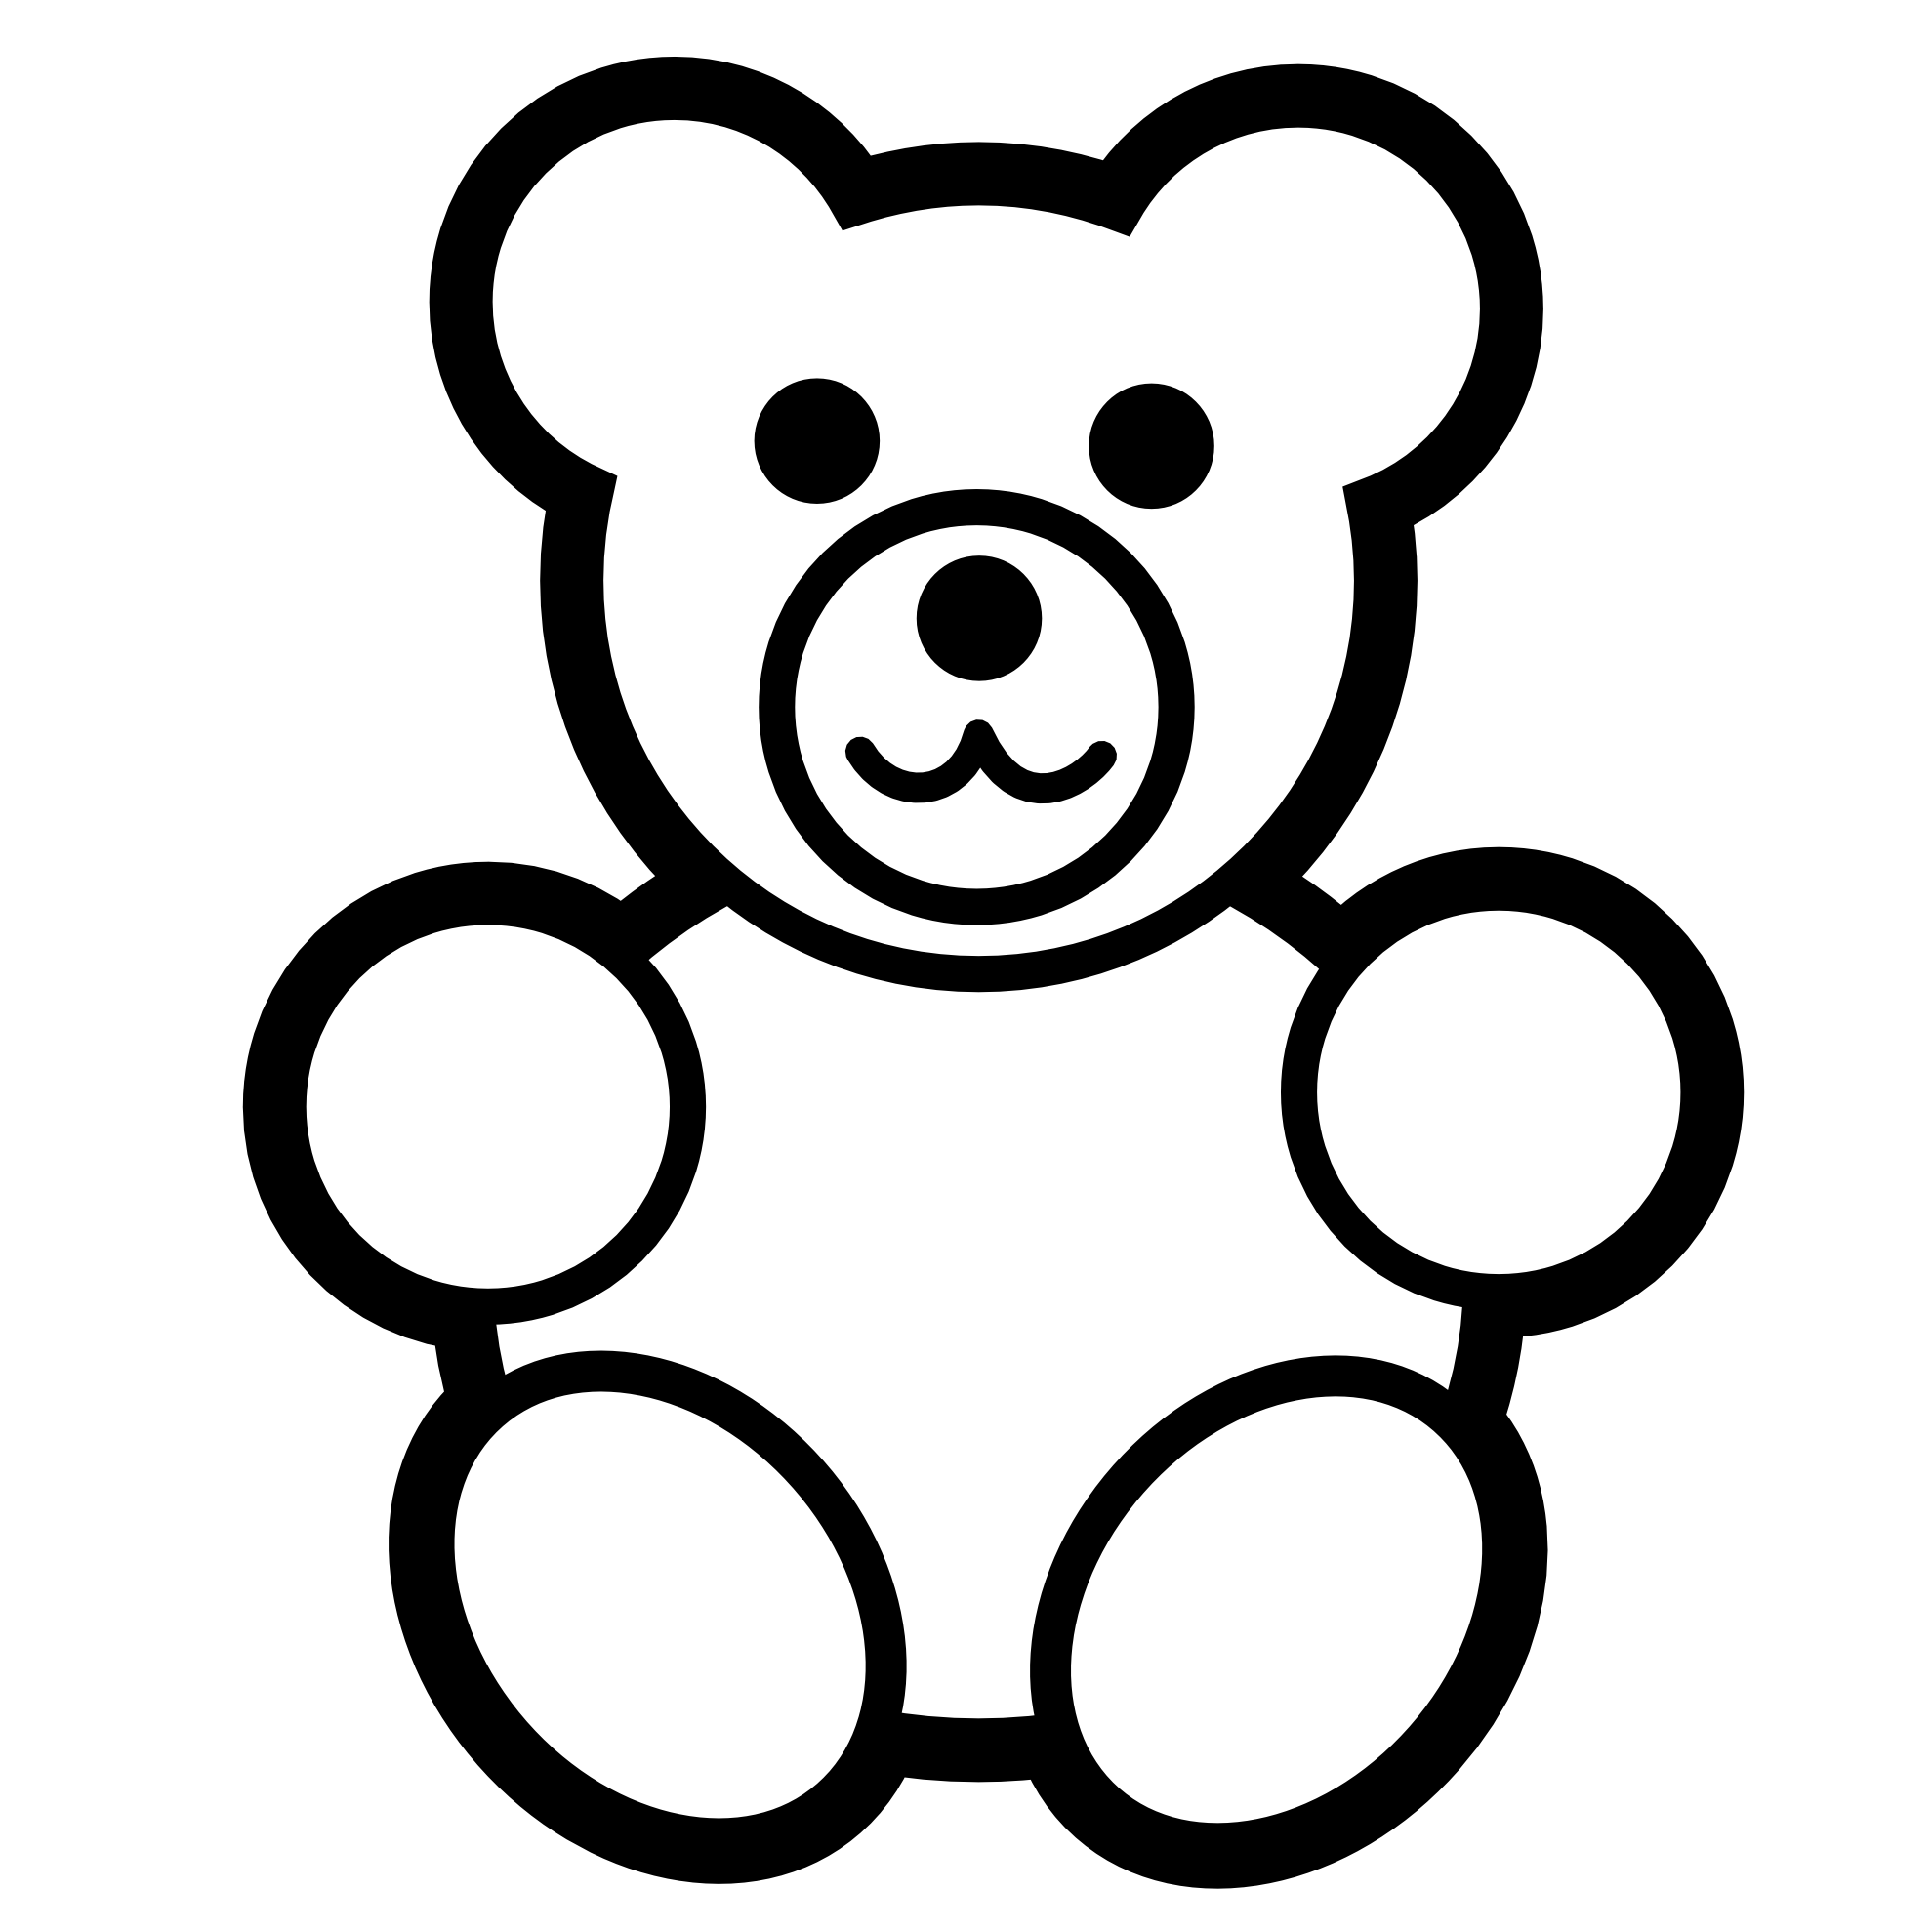 clipartist net clip art pitr teddy bear icon black white line rh pinterest com polar bear clipart black and white free bear clipart black and white